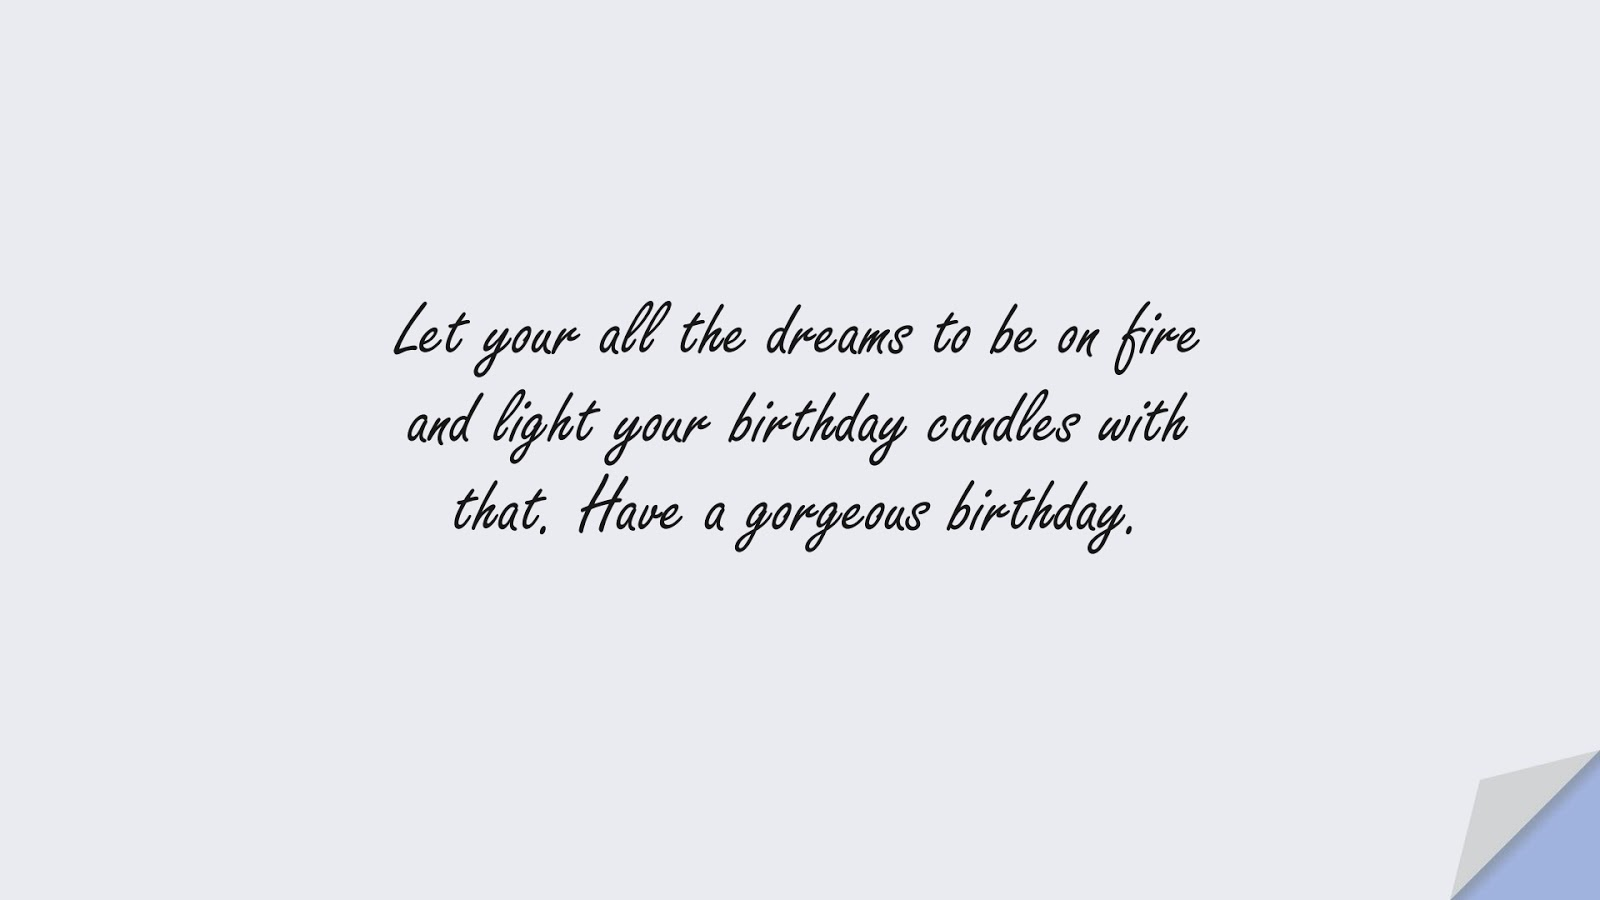 Let your all the dreams to be on fire and light your birthday candles with that. Have a gorgeous birthday.FALSE